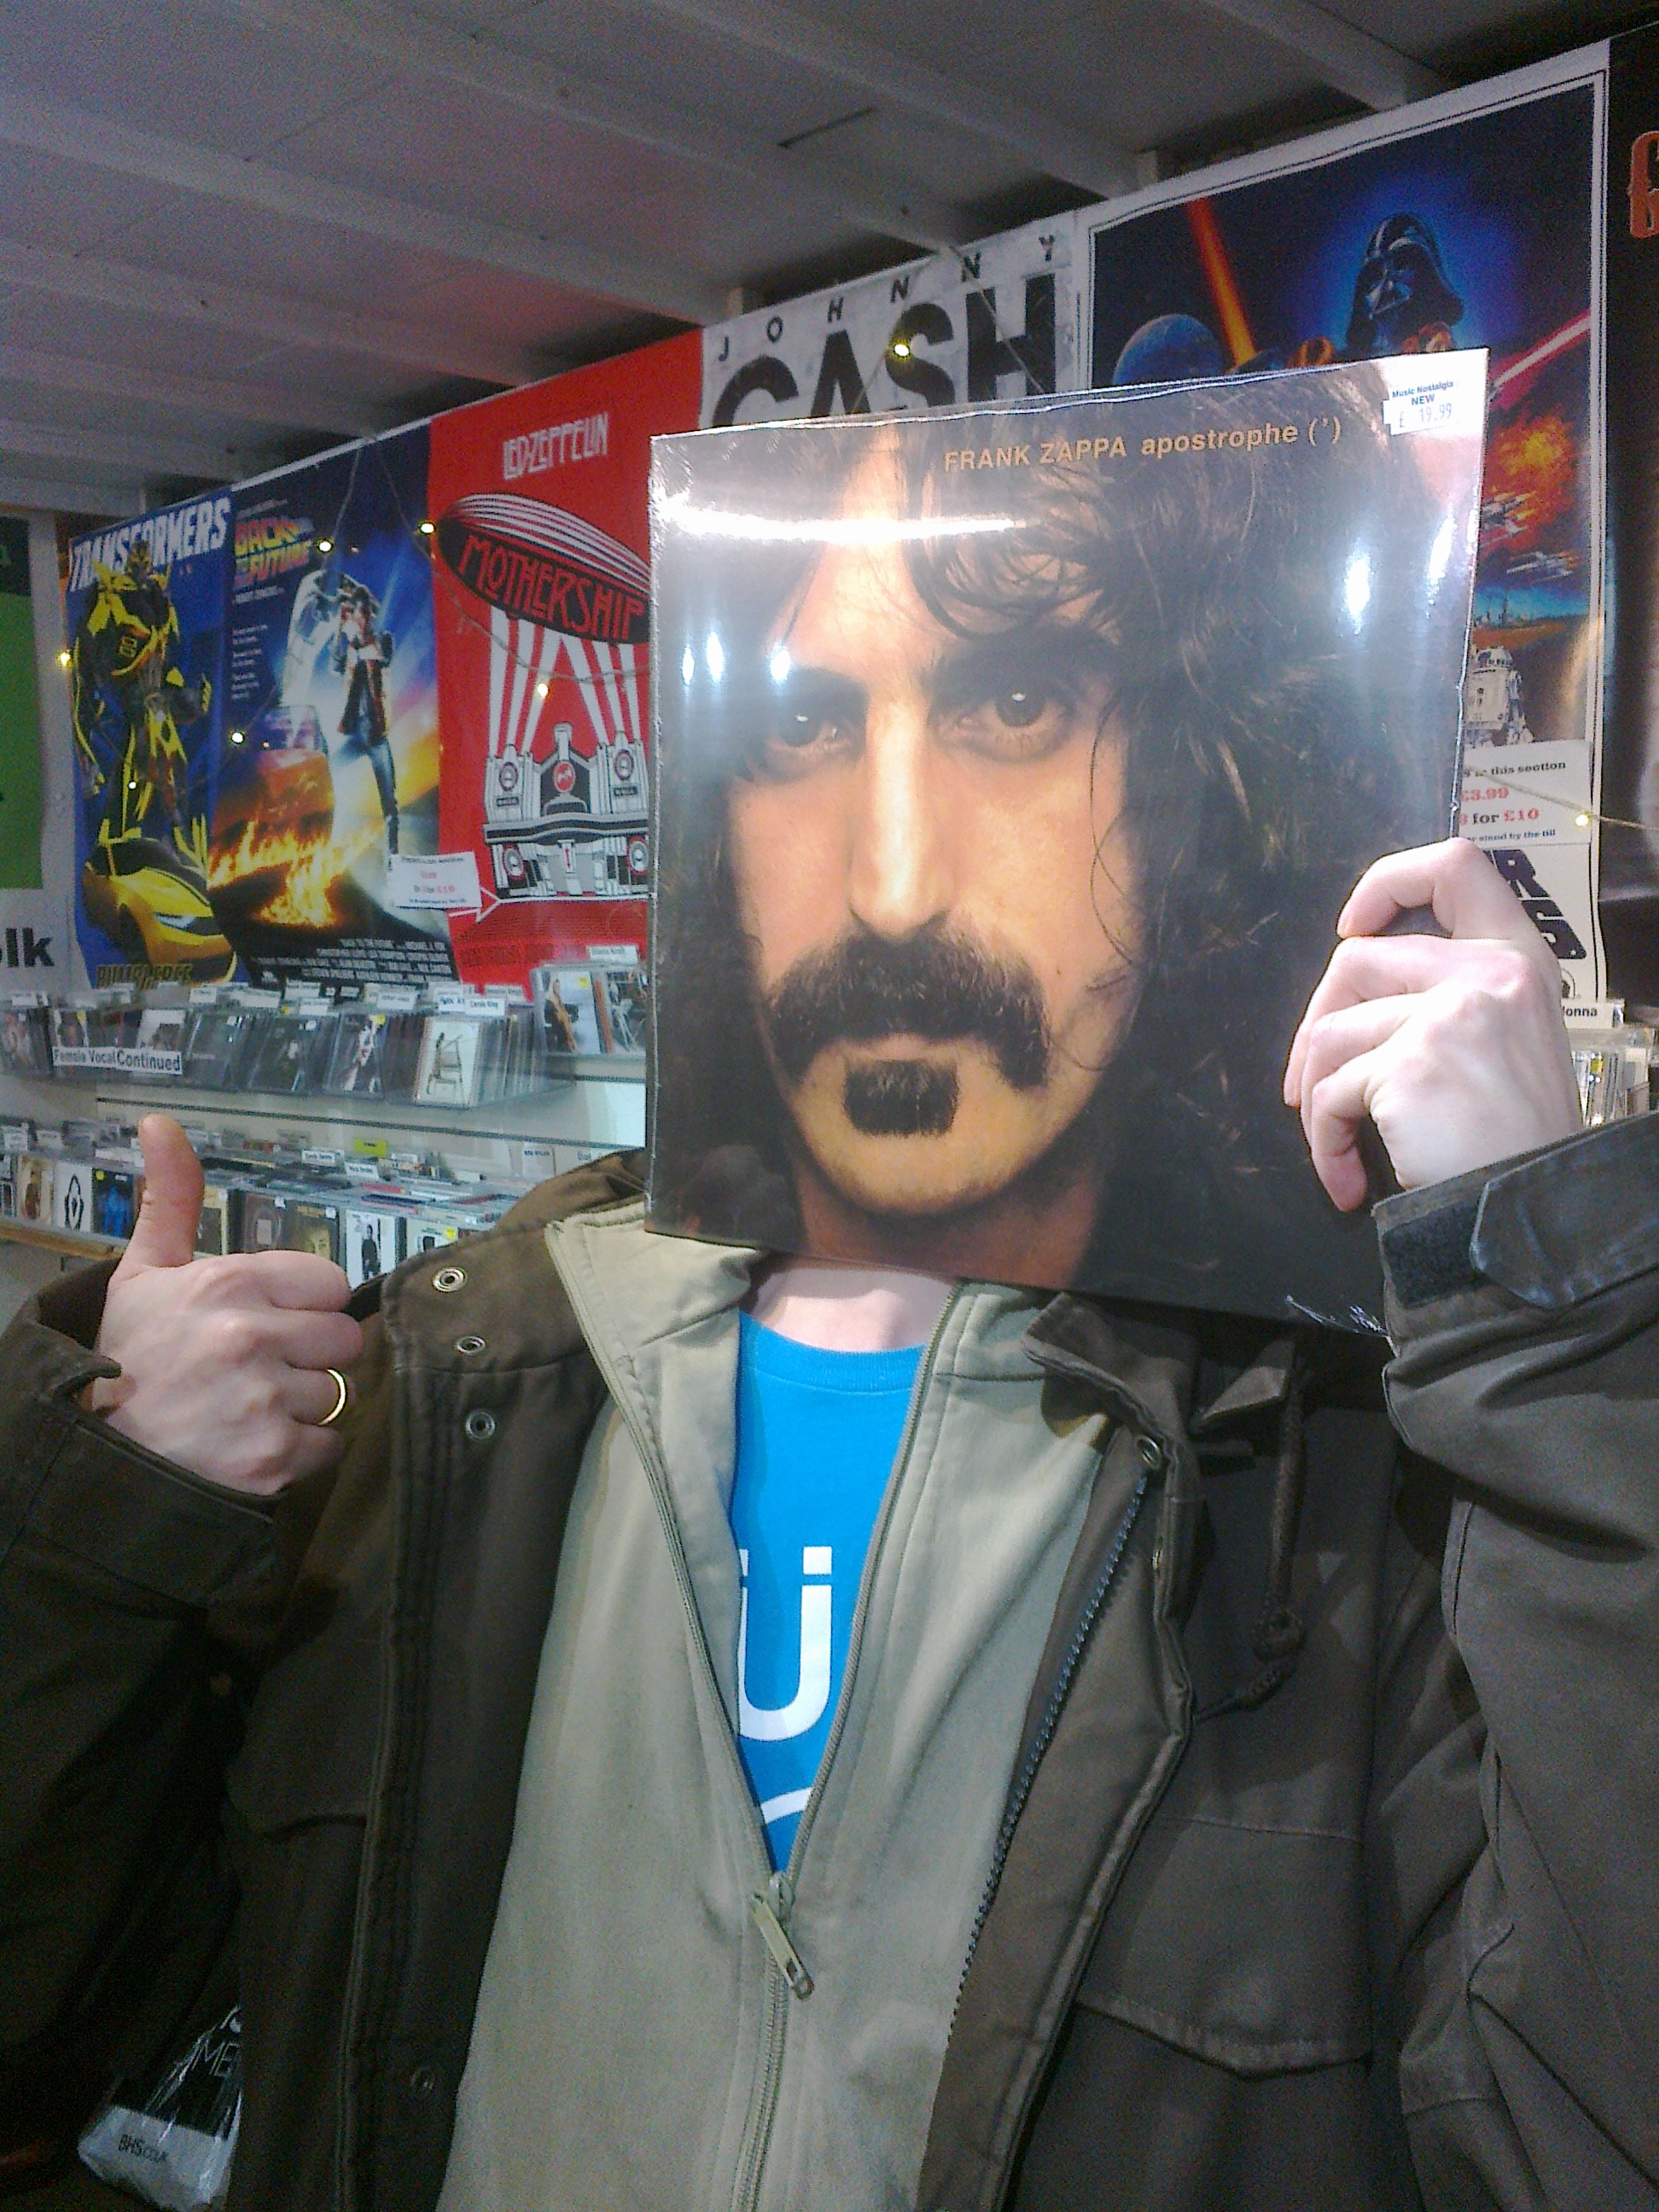 Frank Zappa Spotted In Cornwall Notes From The Drunken Monk